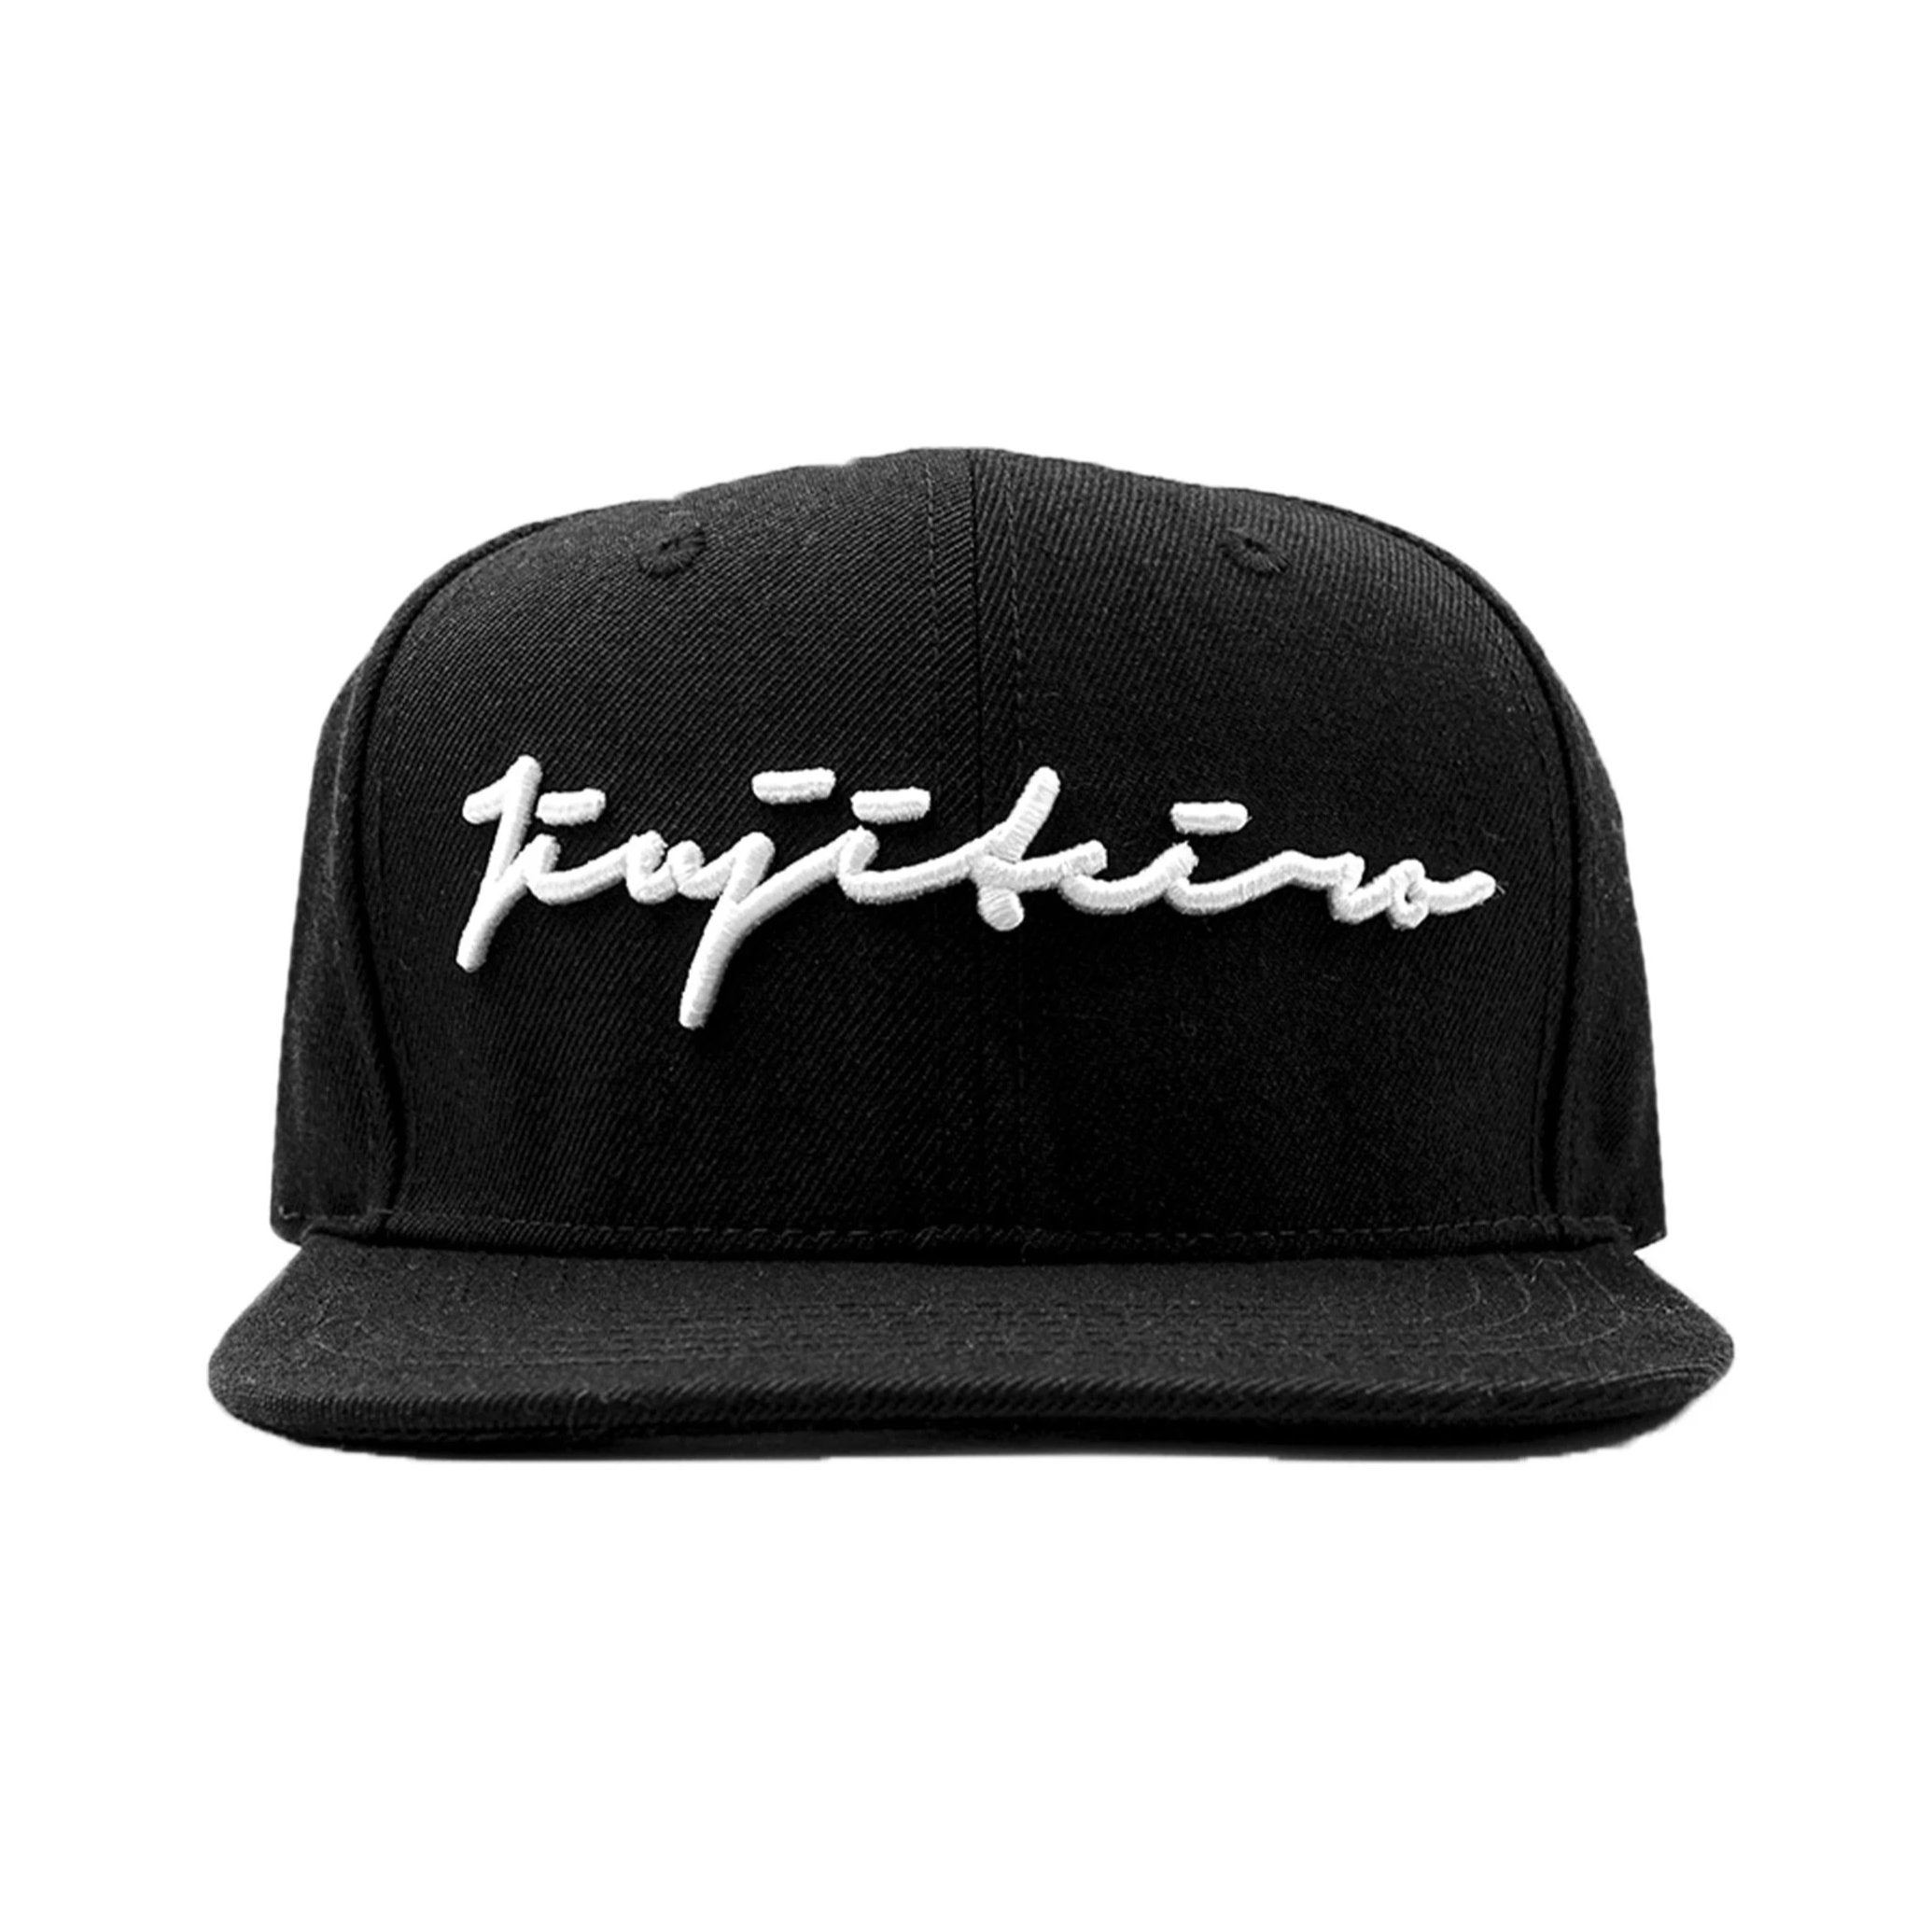 SIGNATURE SNAP BACK BLACK